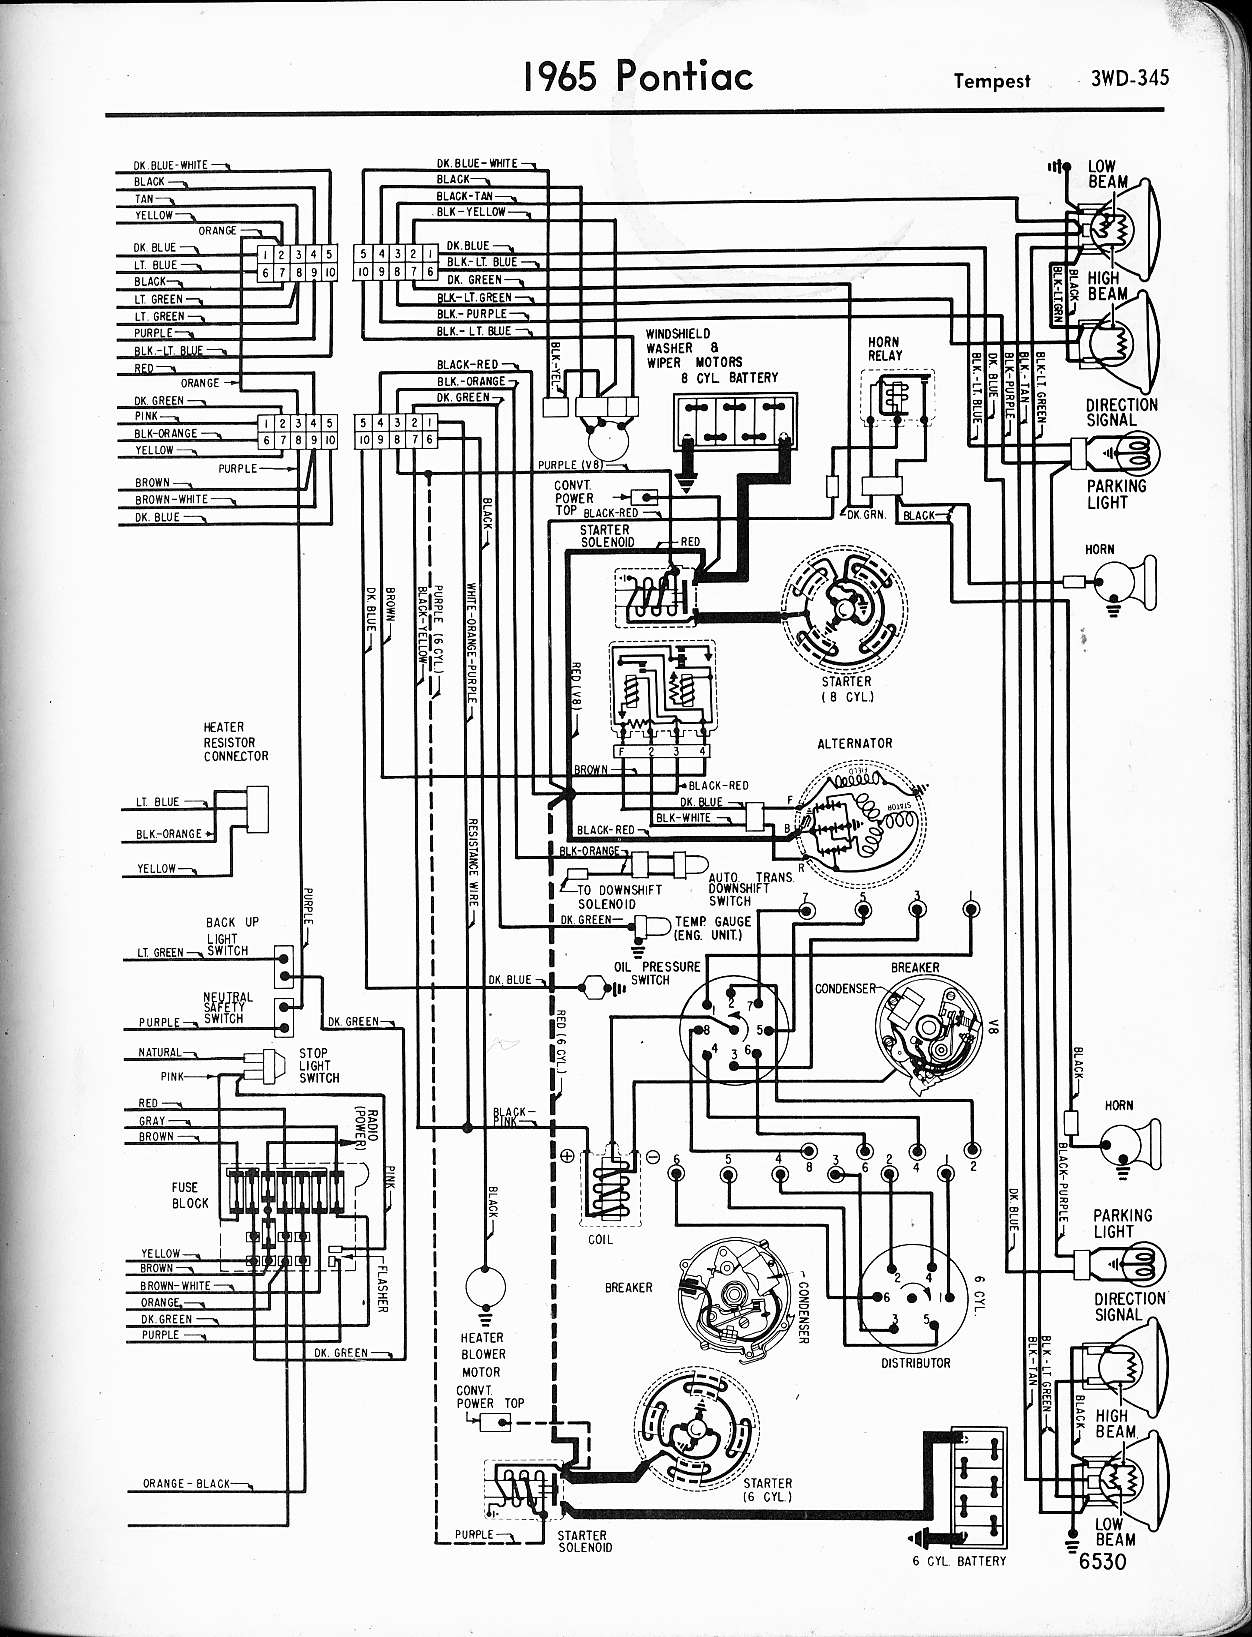 Excellent 1969 Camaro Horn Wiring Diagram Wiring Diagram Tutorial Wiring Cloud Philuggs Outletorg